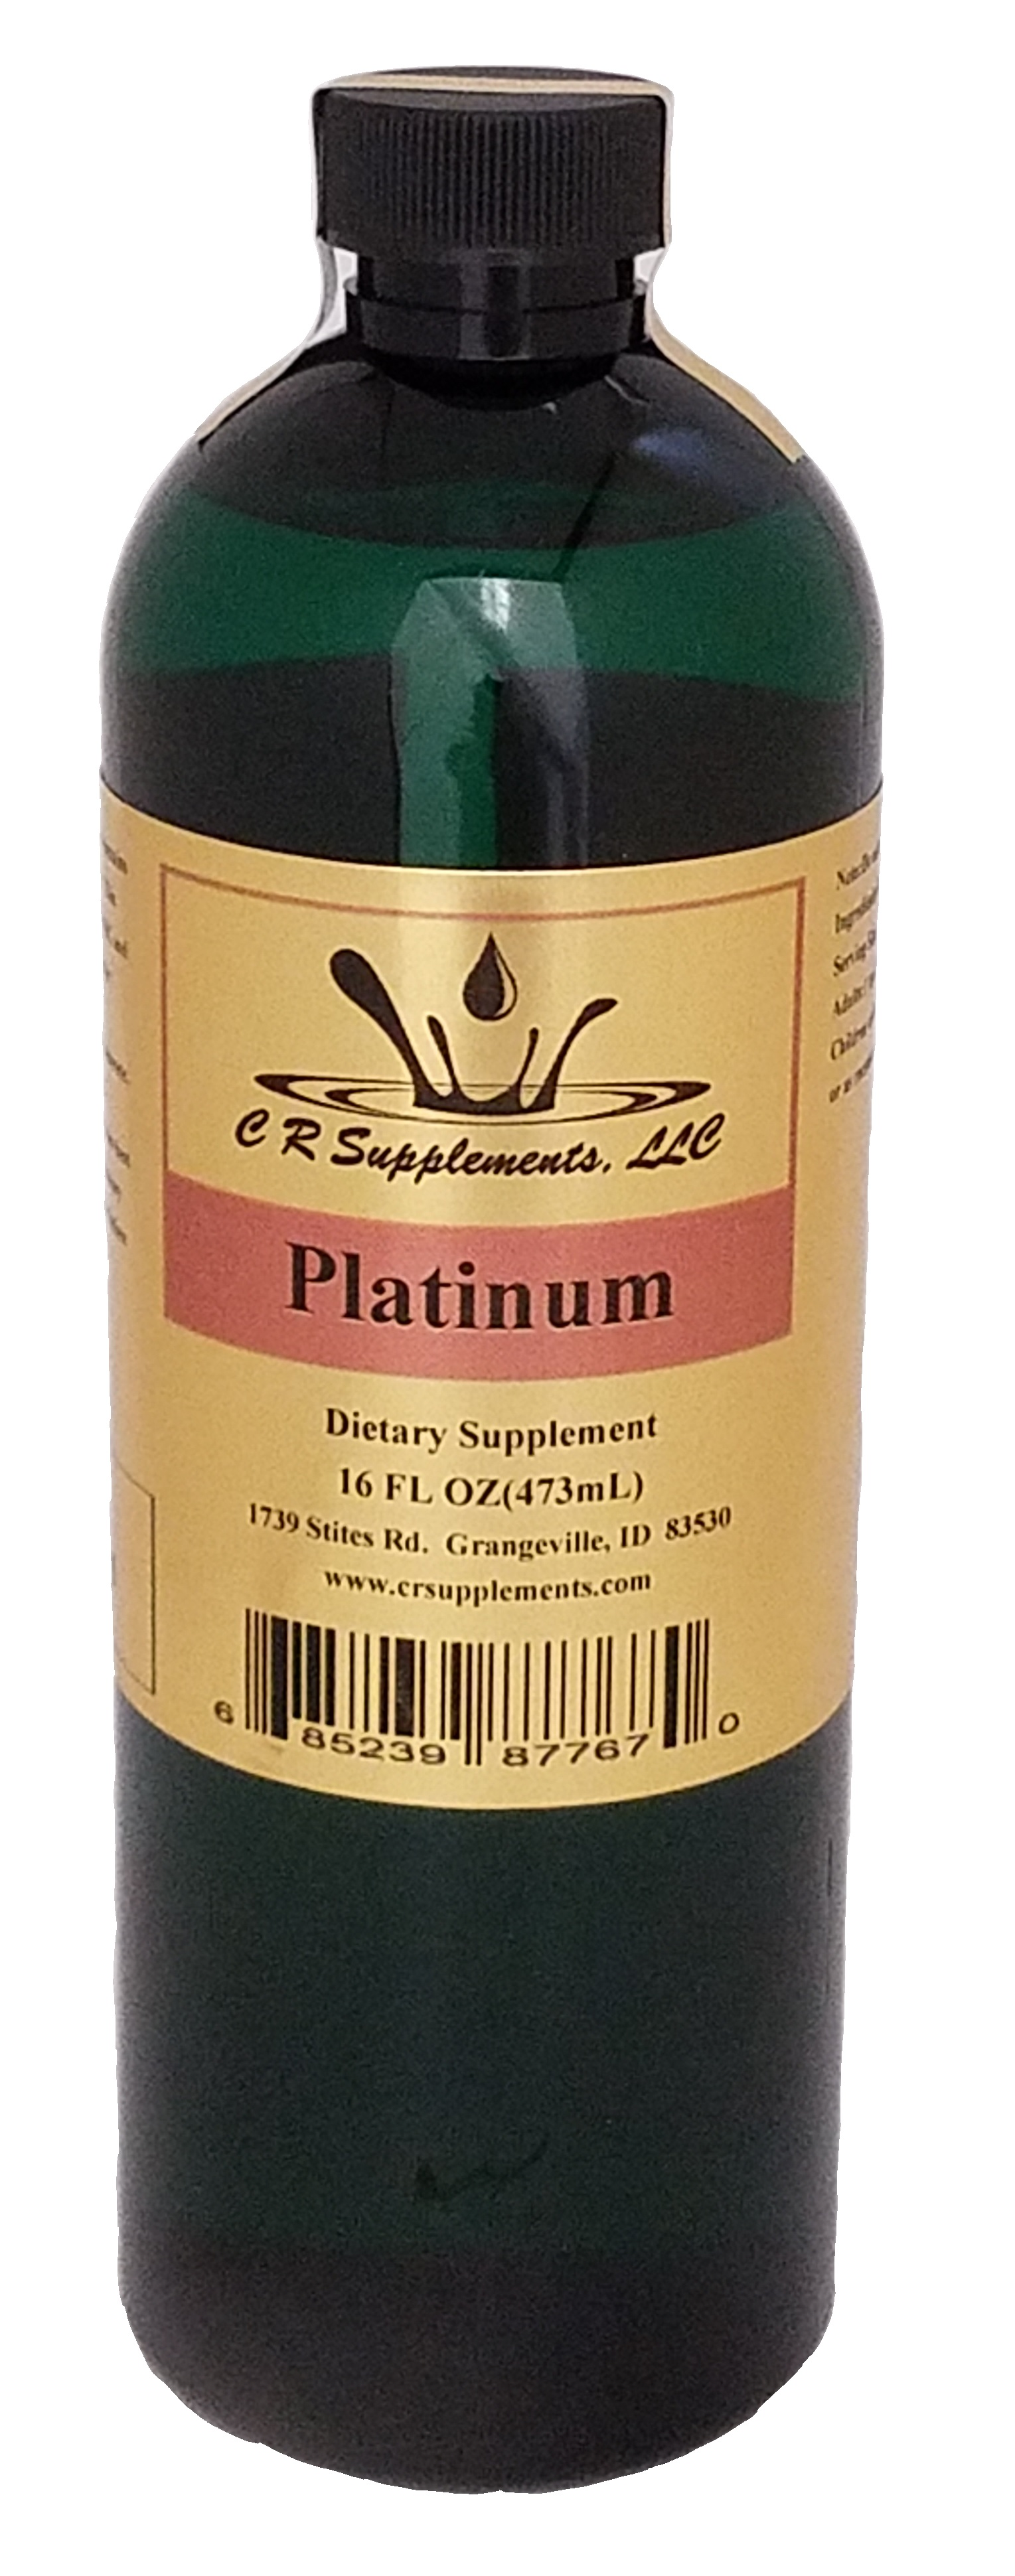 Platinum Dietary Supplement, Platinum, WaterOz Platinum Replacement, Liquid dietary supplement, Kosher of America approved, KOA approved, Pareve, vegan application, elemental mineral, flexible liquid mineral, maximum absorption